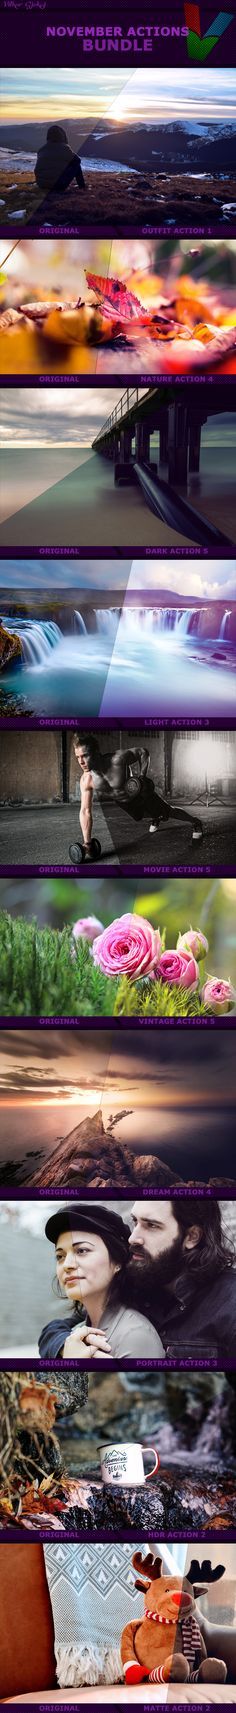 November Photoshop Actions Bundle actions bundle, colors, contrast filters, dark light, dream, fashion style, fit model, graphic art, graphic design, hot girl, hot model, nature, outfit, people portrait, photography, resources, September Photoshop, six pack, stock images, web design